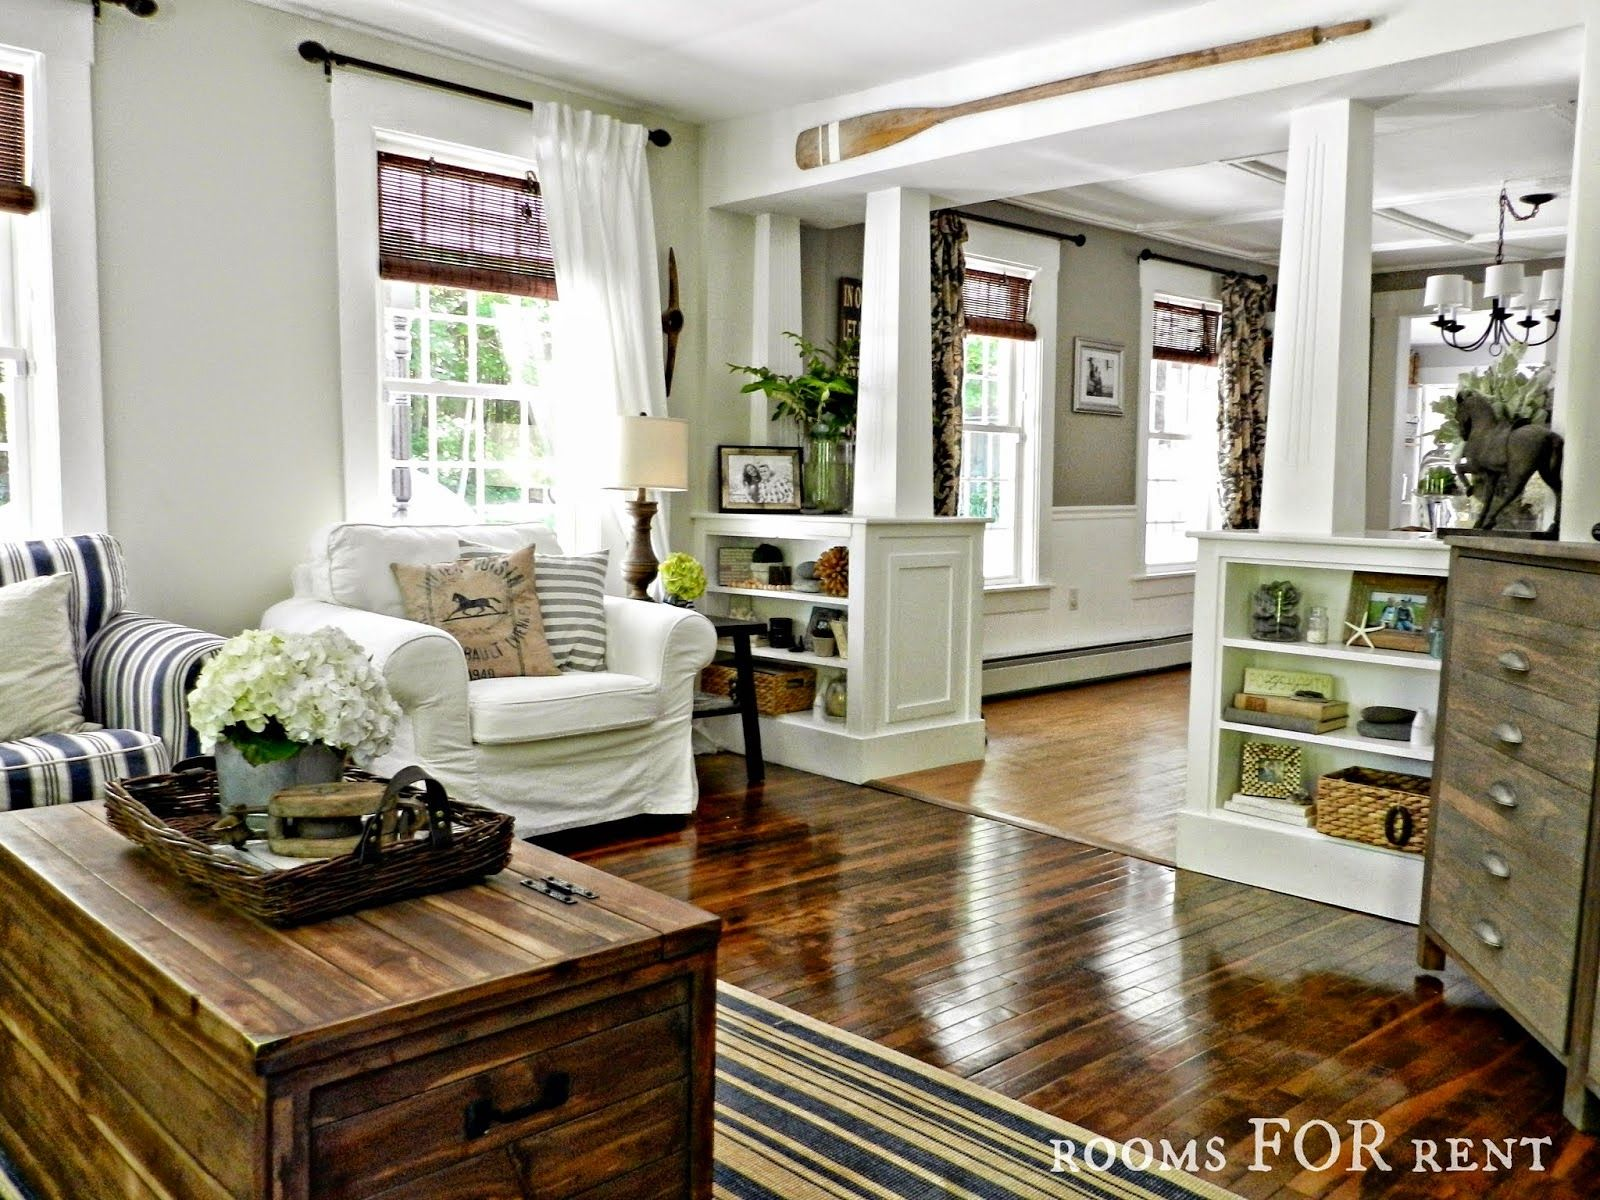 Style House-Rooms For Rent | City farmhouse, Columns and Renting